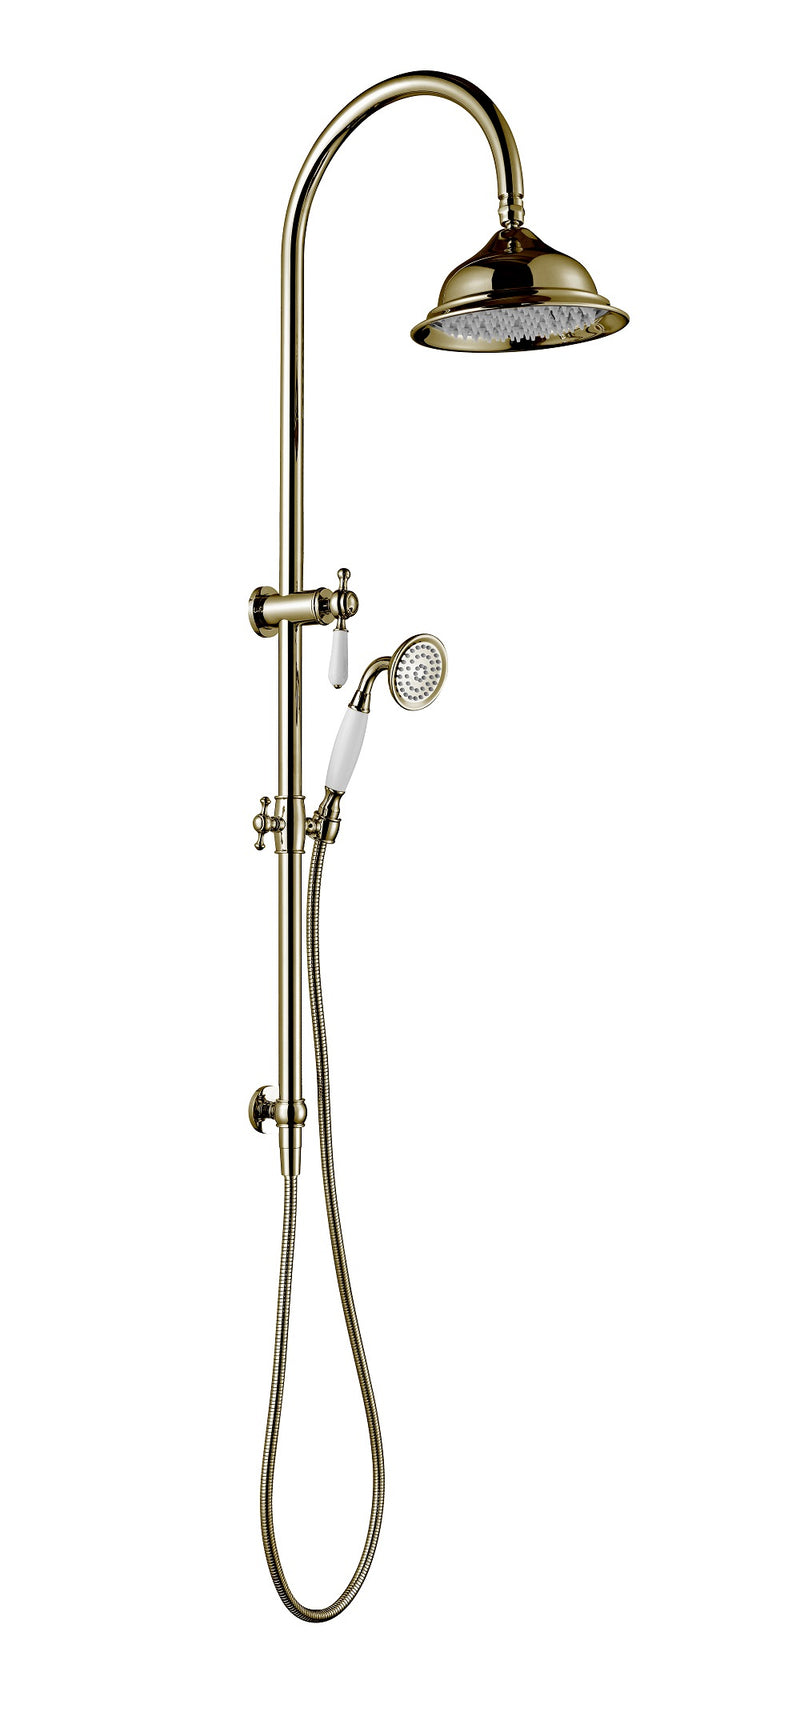 Modern National Bordeaux Shower Column Set Brushed Bronze BOR013BM